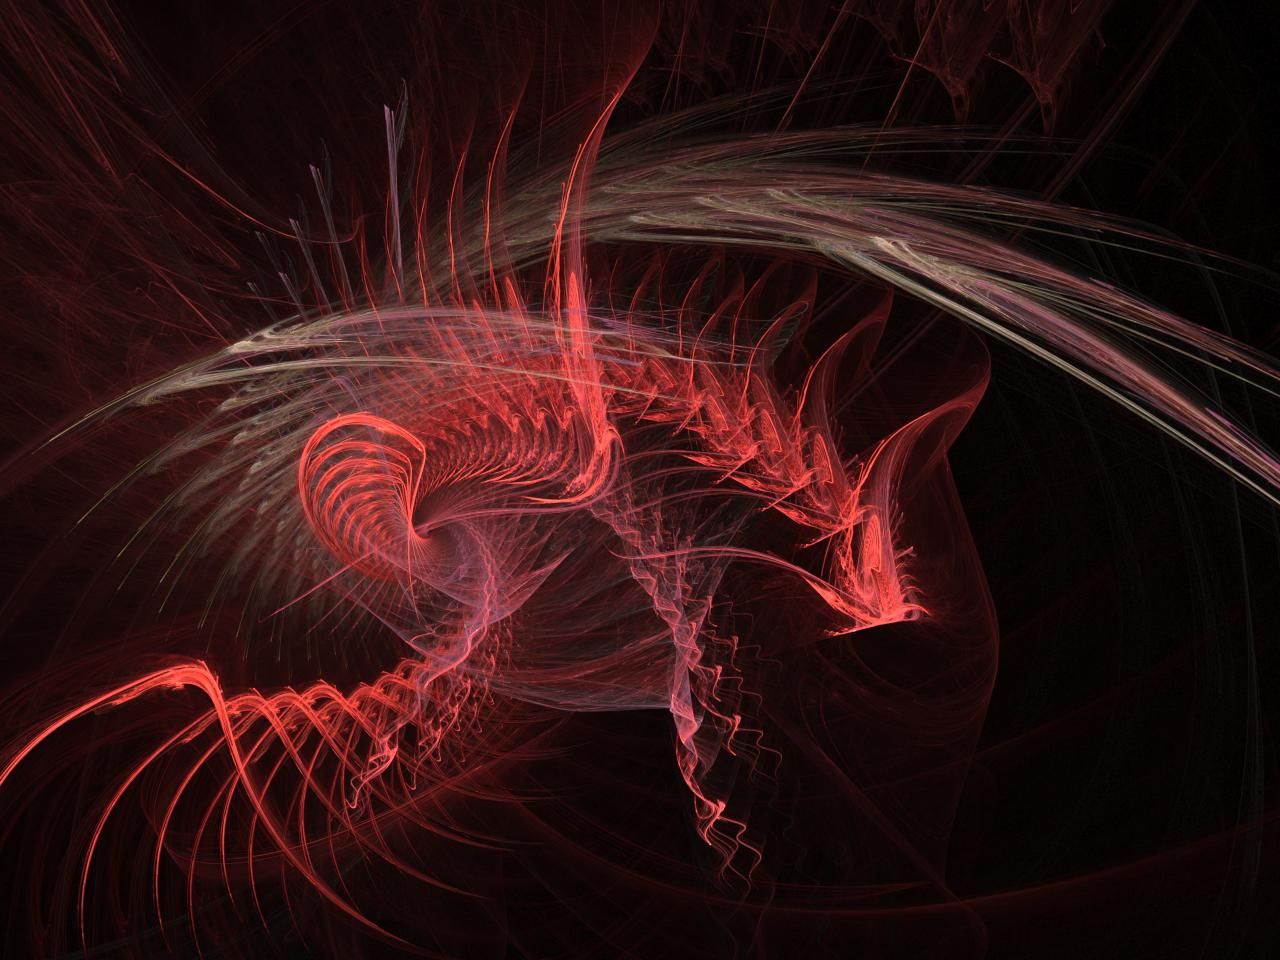 Dragon Lines Abstract Image